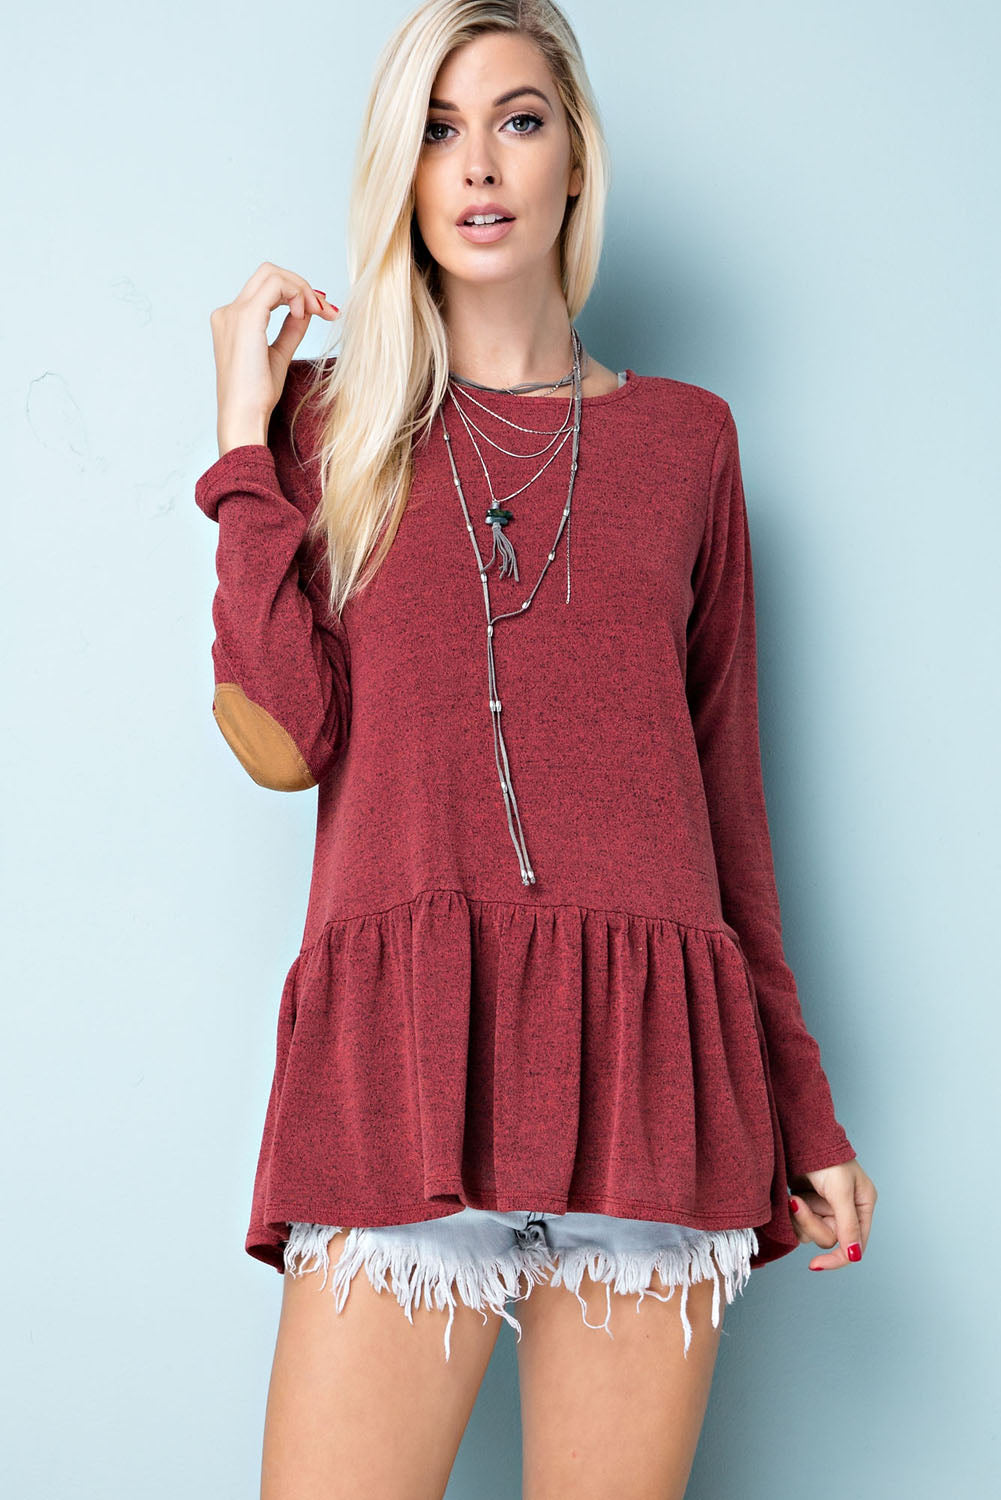 Two-Tone, Raw Edge Knit Top - Brick